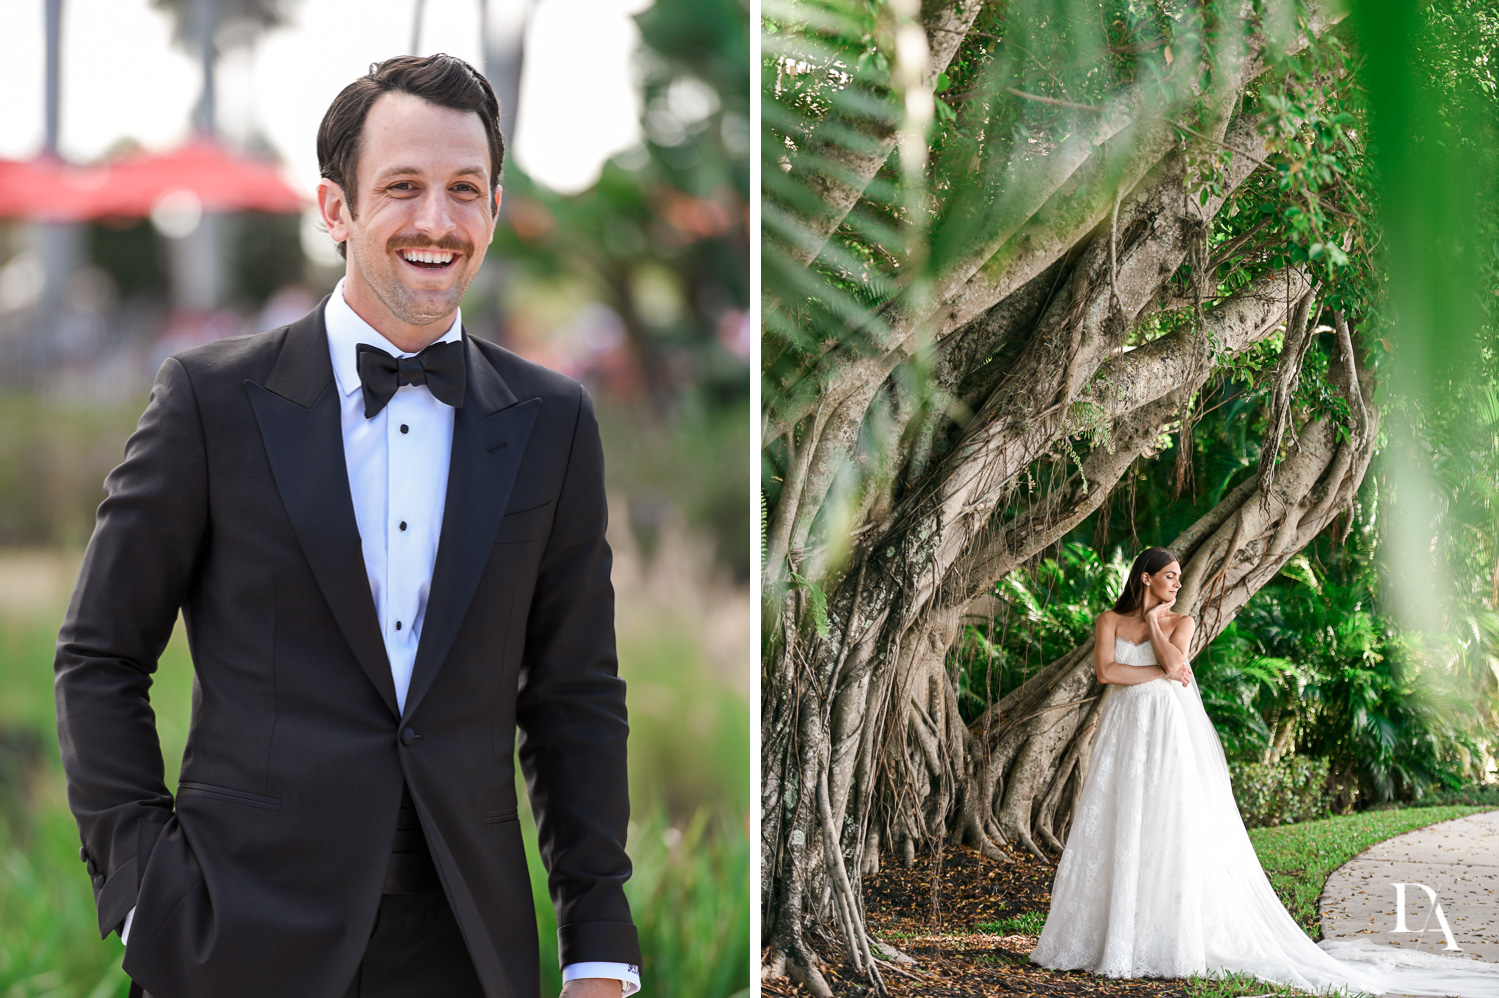 natural portraits at Stunning Golf Course Wedding at PGA National Palm Beach by Domino Arts Photography